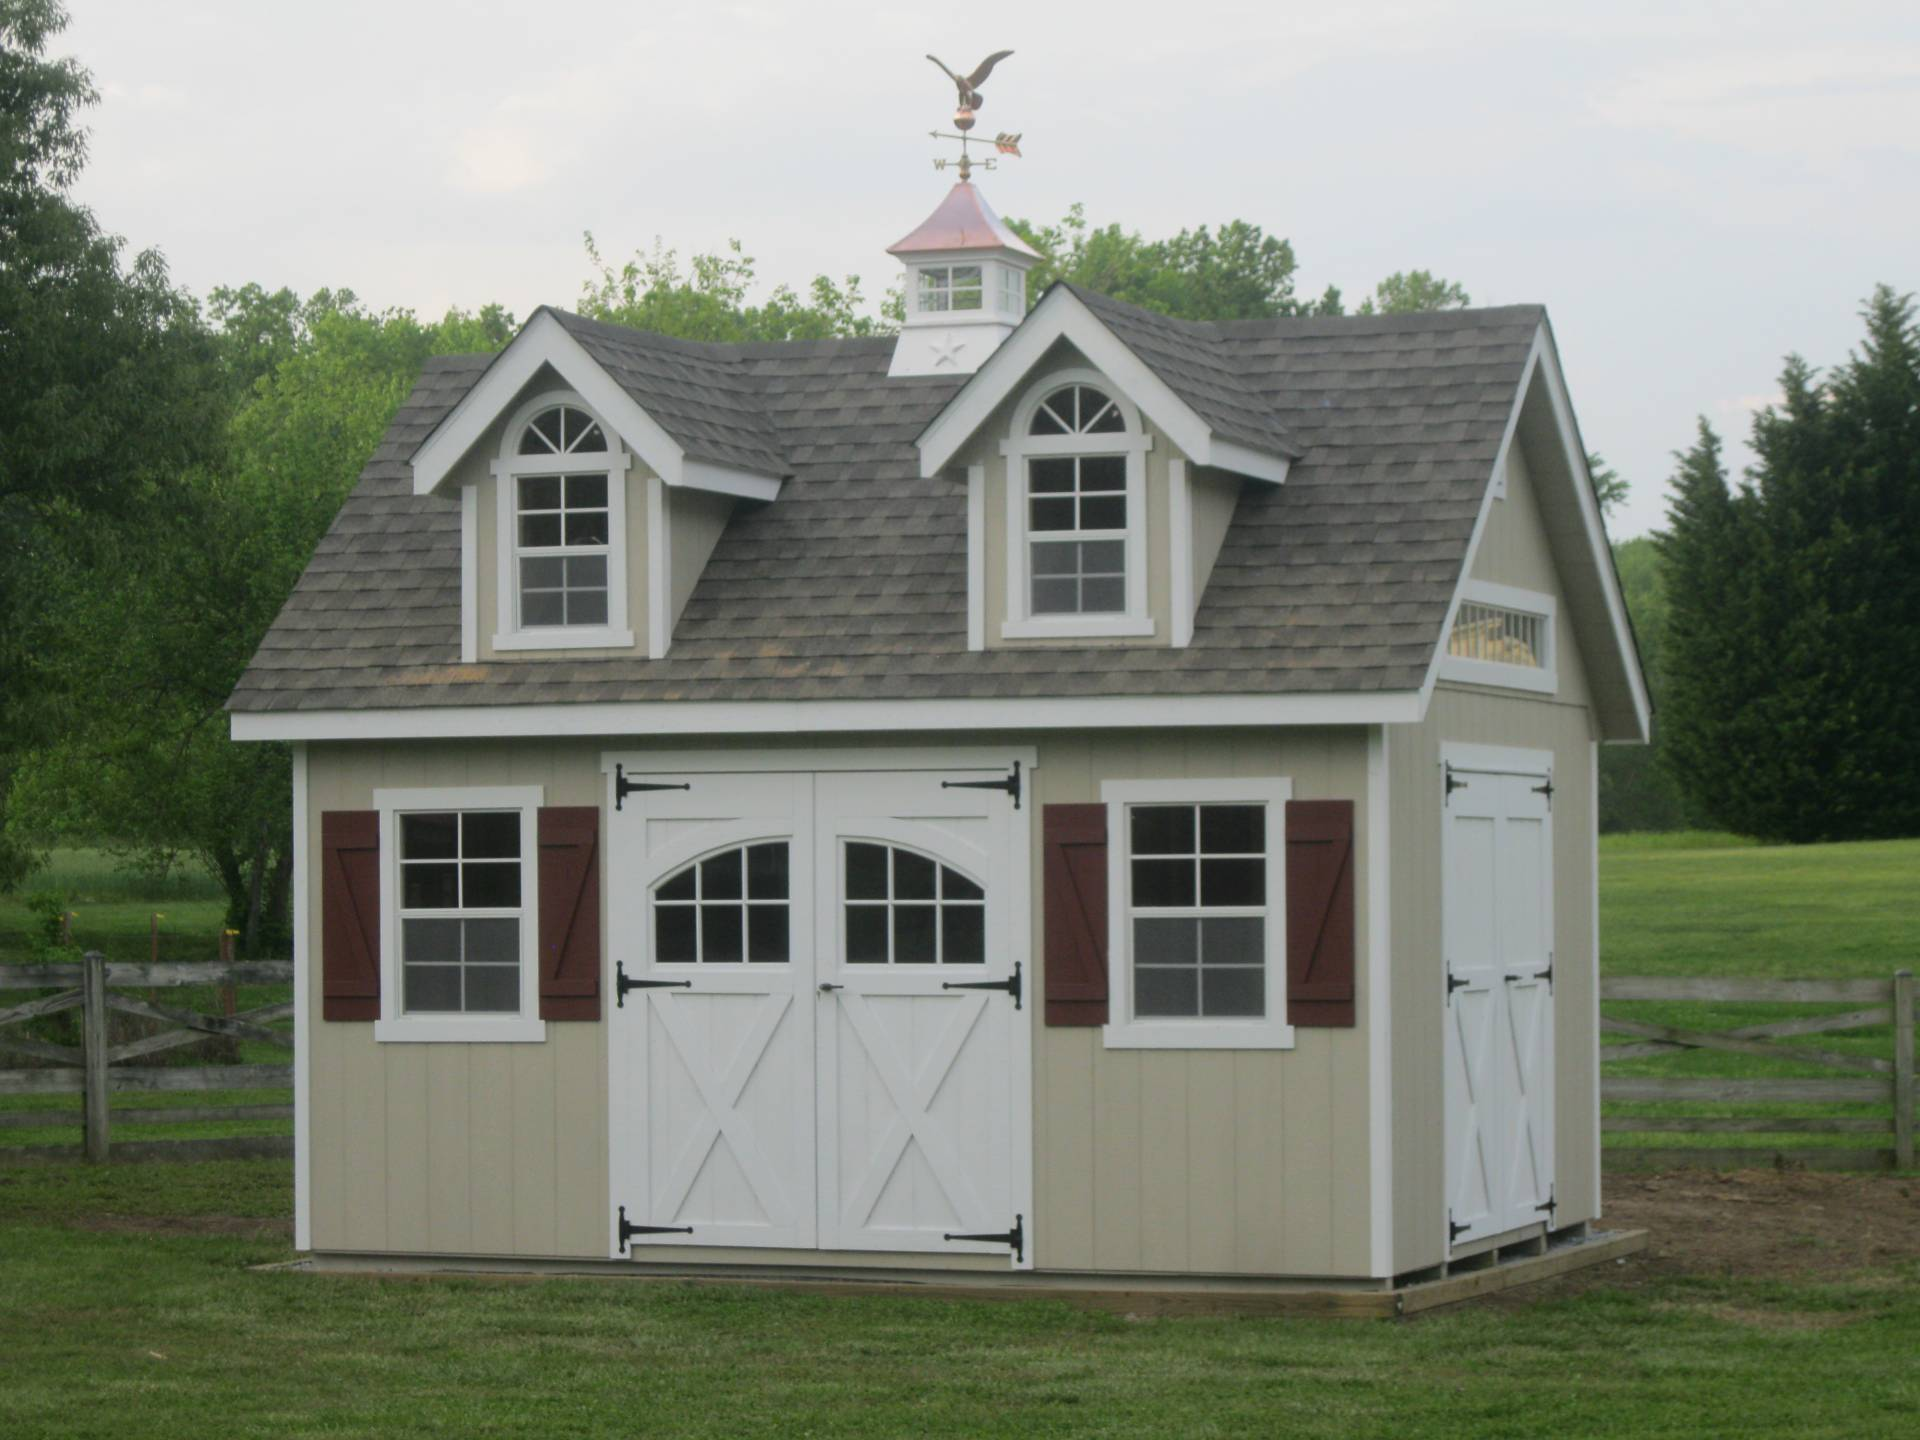 cupola on outdoor shed